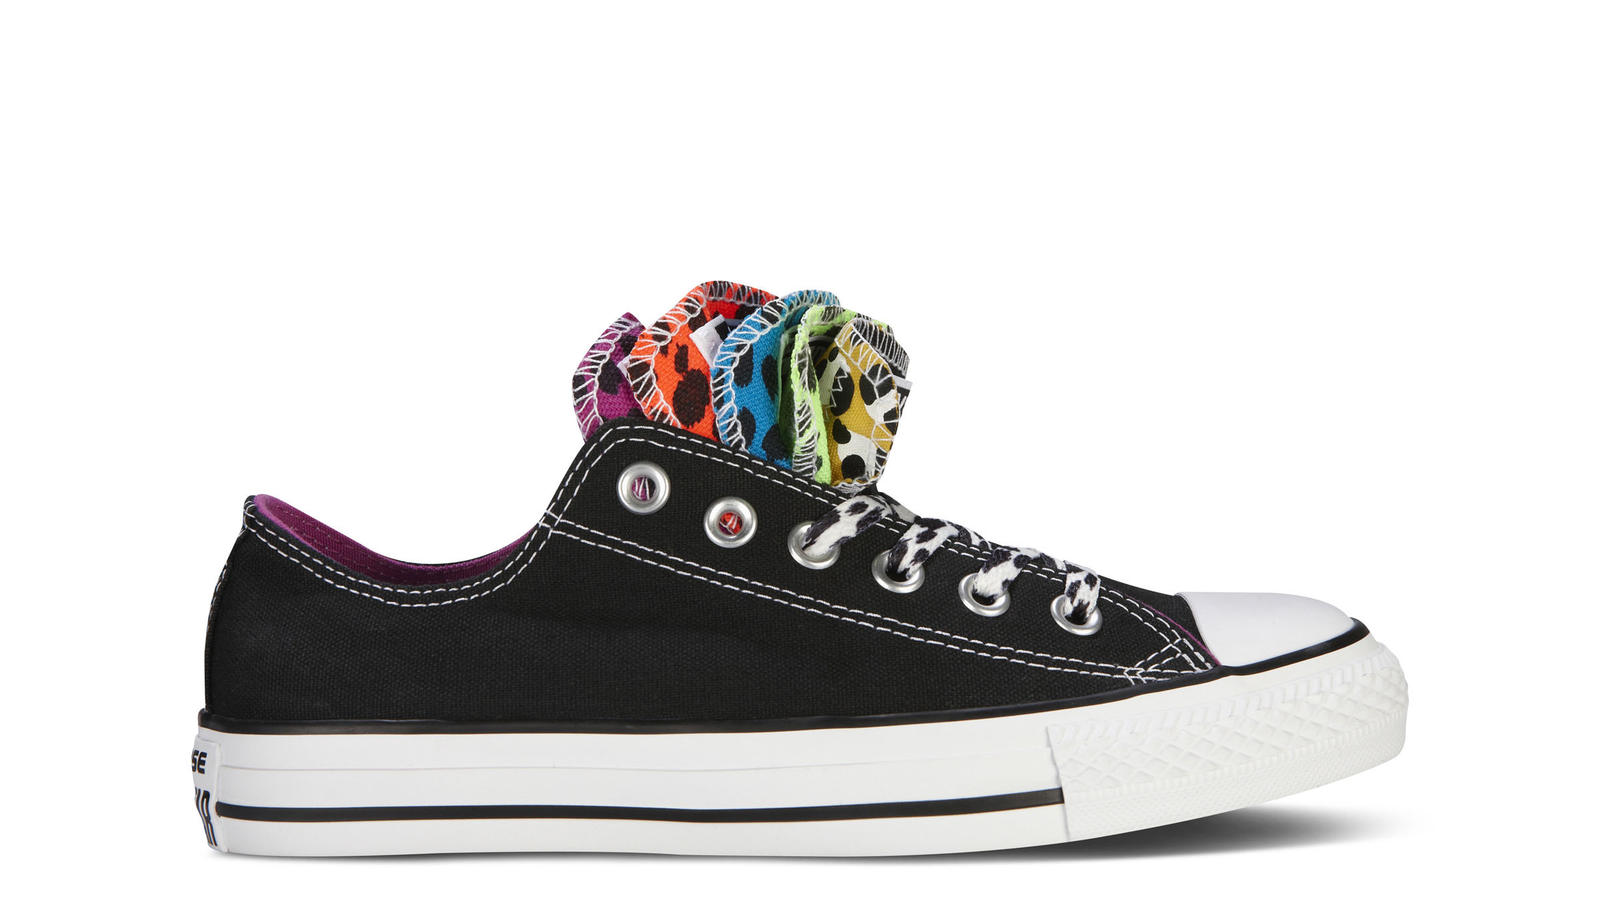 Converse Fall 2013 All Star Footwear Collections Celebrate ... 014afb899